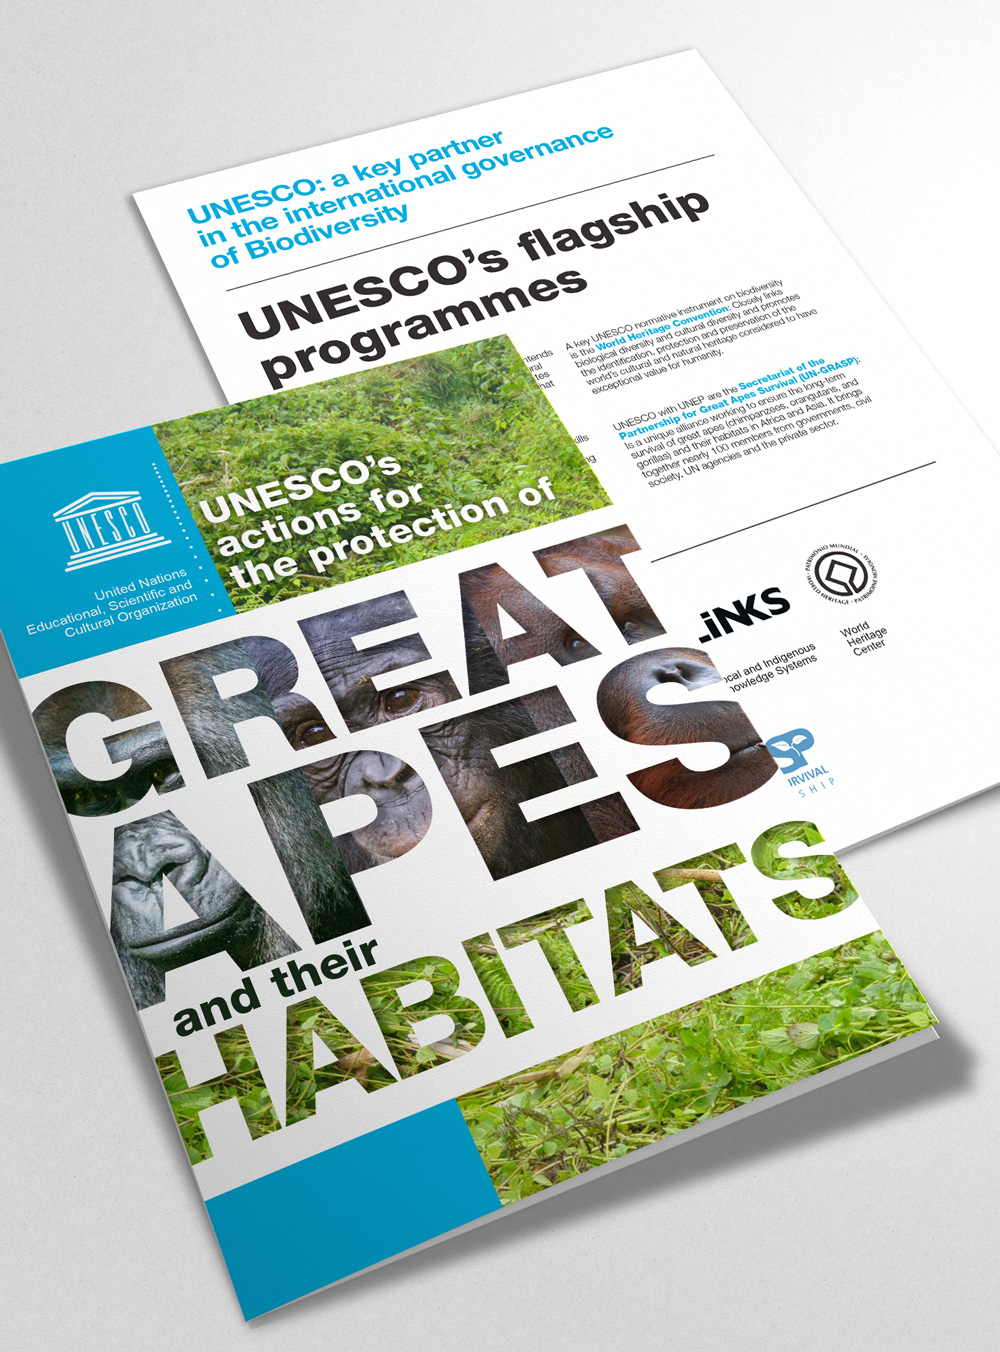 Great Apes Science UNESCO _ Design Agence Si 01